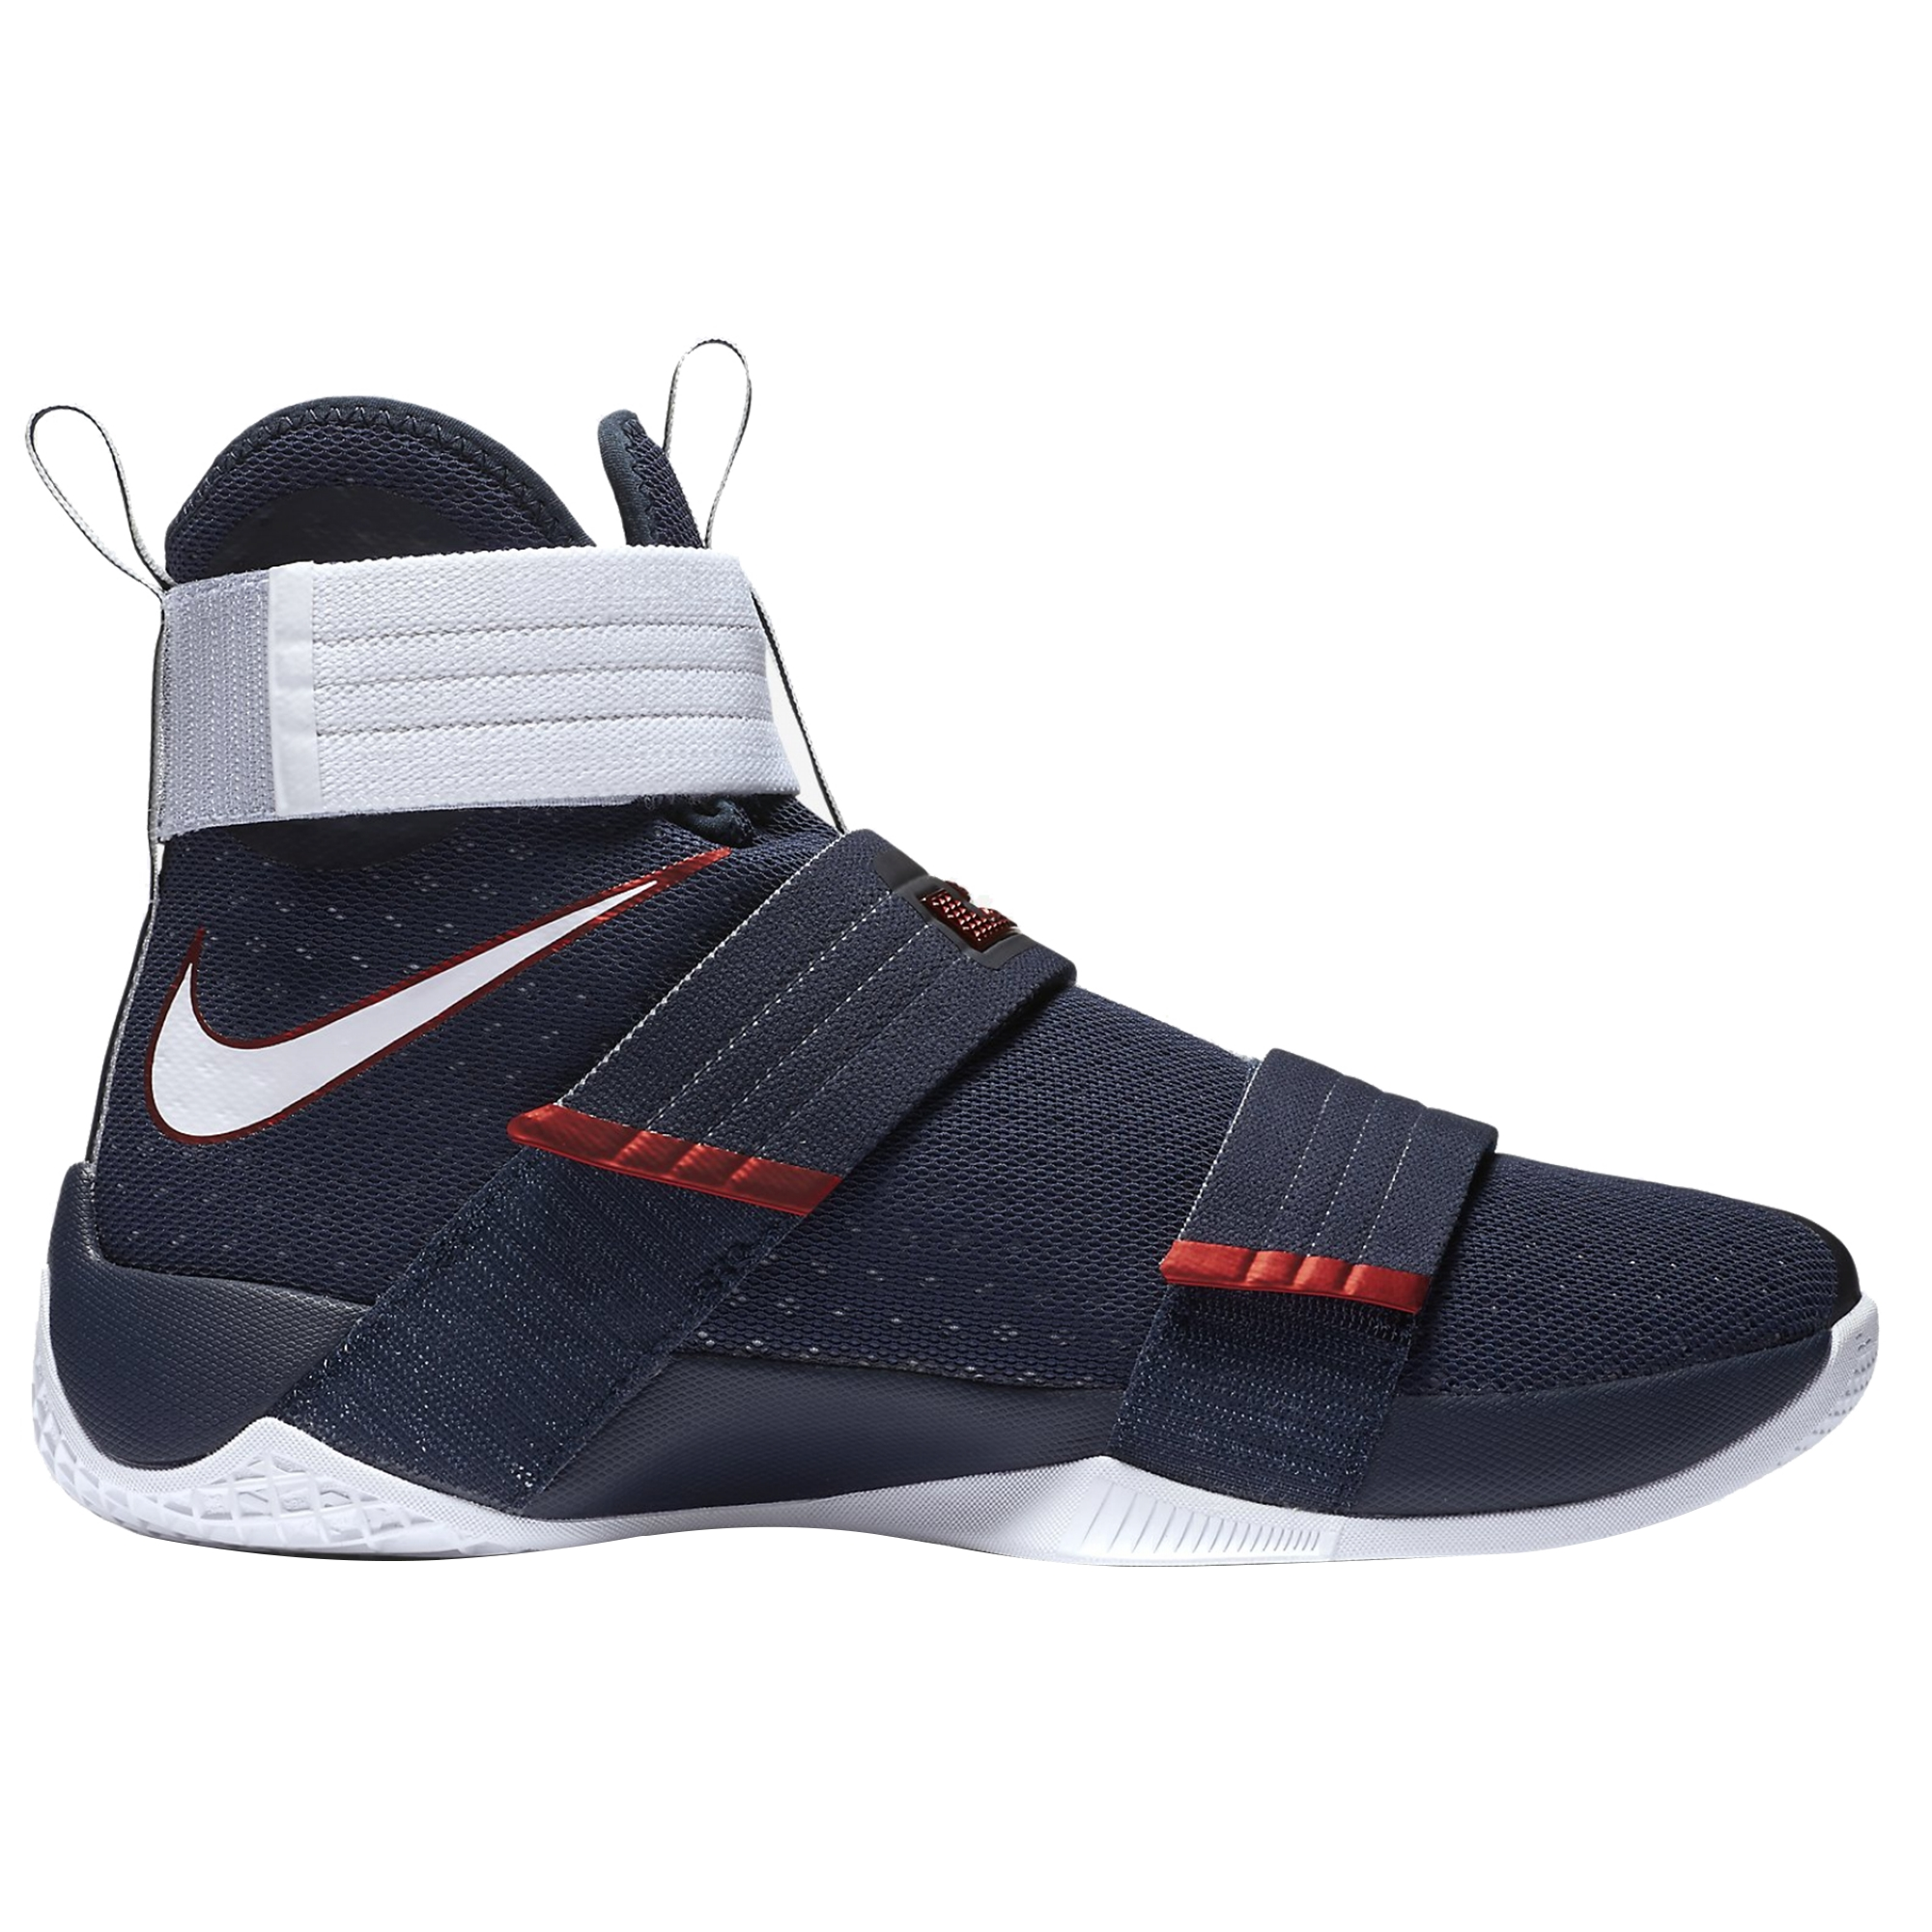 buy online 48b70 c5884 Nike Zoom LeBron James Soldier 10 Sfg Erkek Basketbol Ayakkabısı